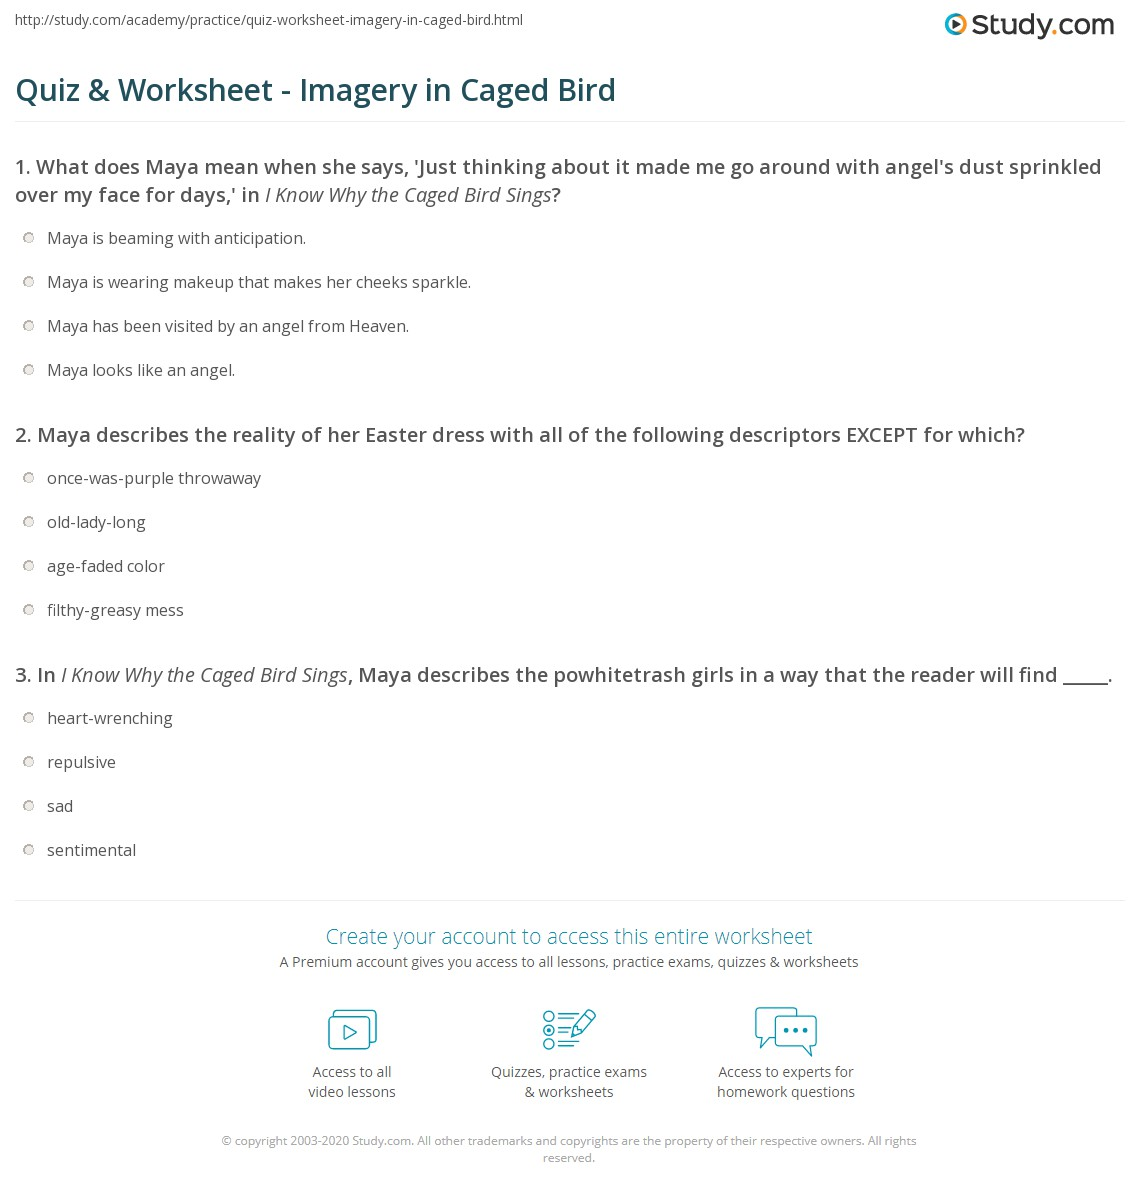 Quiz Worksheet Imagery In Caged Bird Study